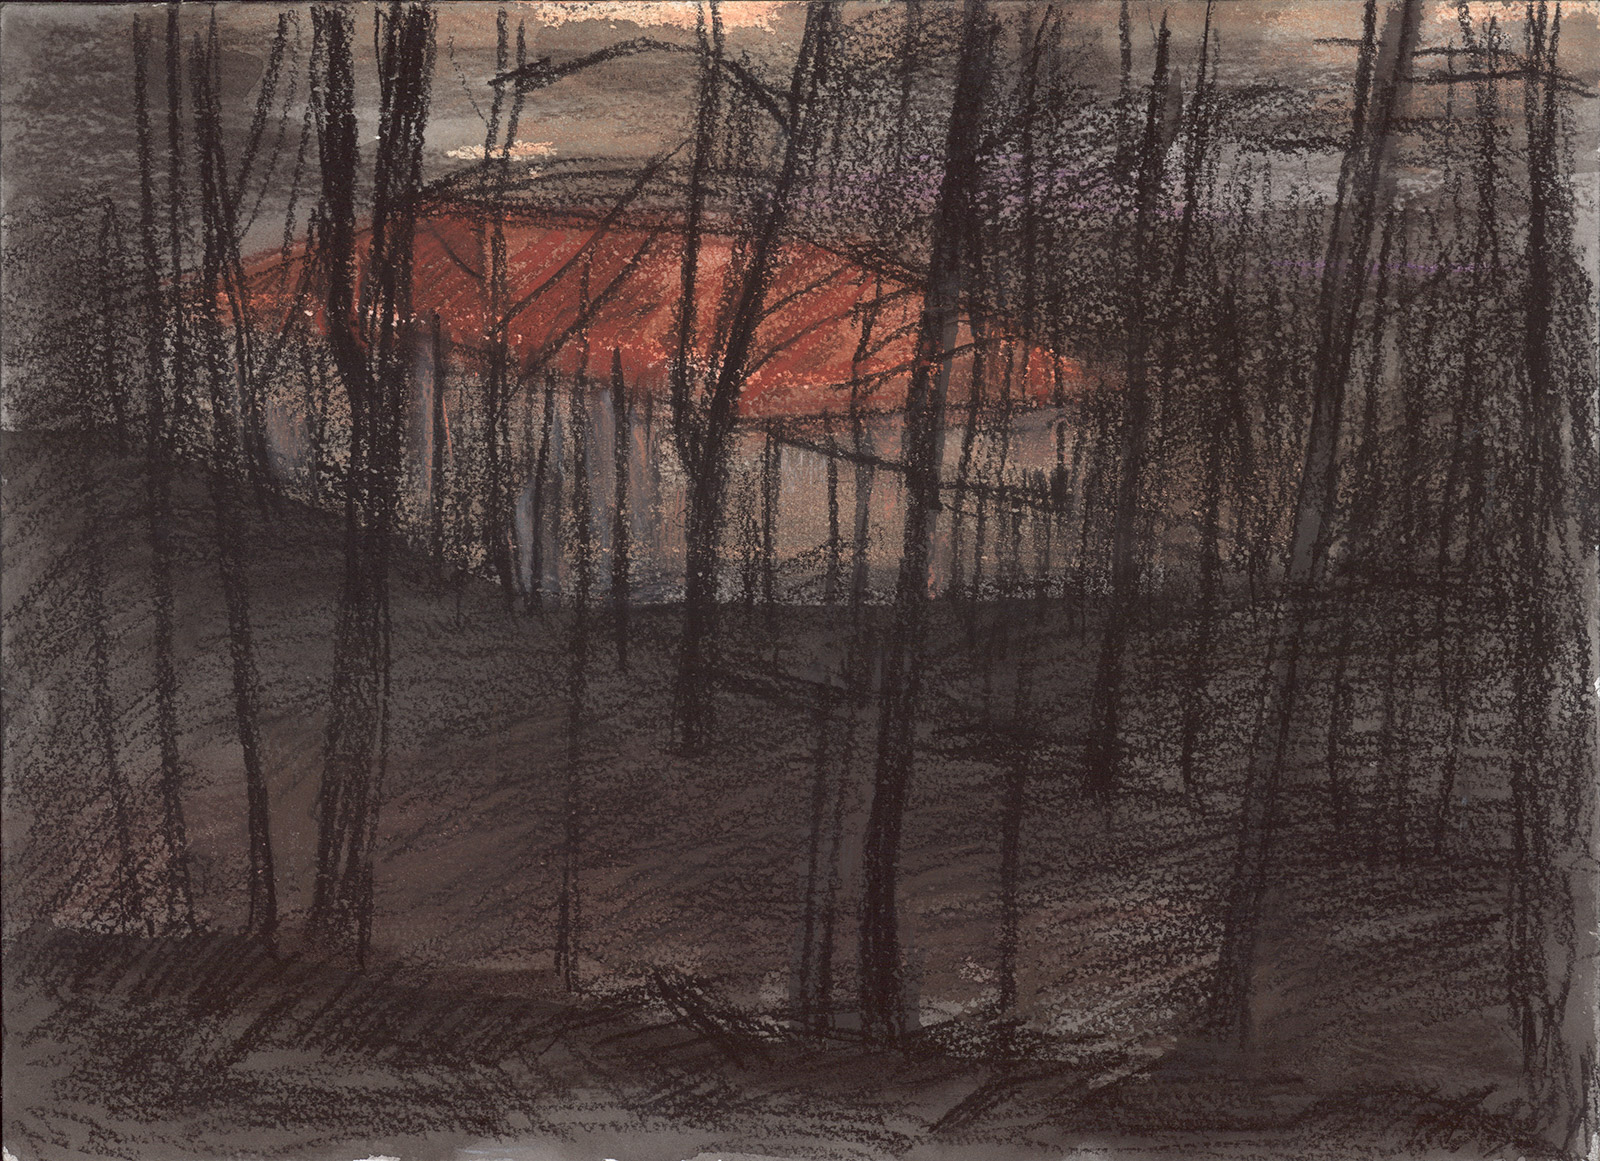 Winterscape 7-17. Ink, pastel, paper. 26x36cm. 2012